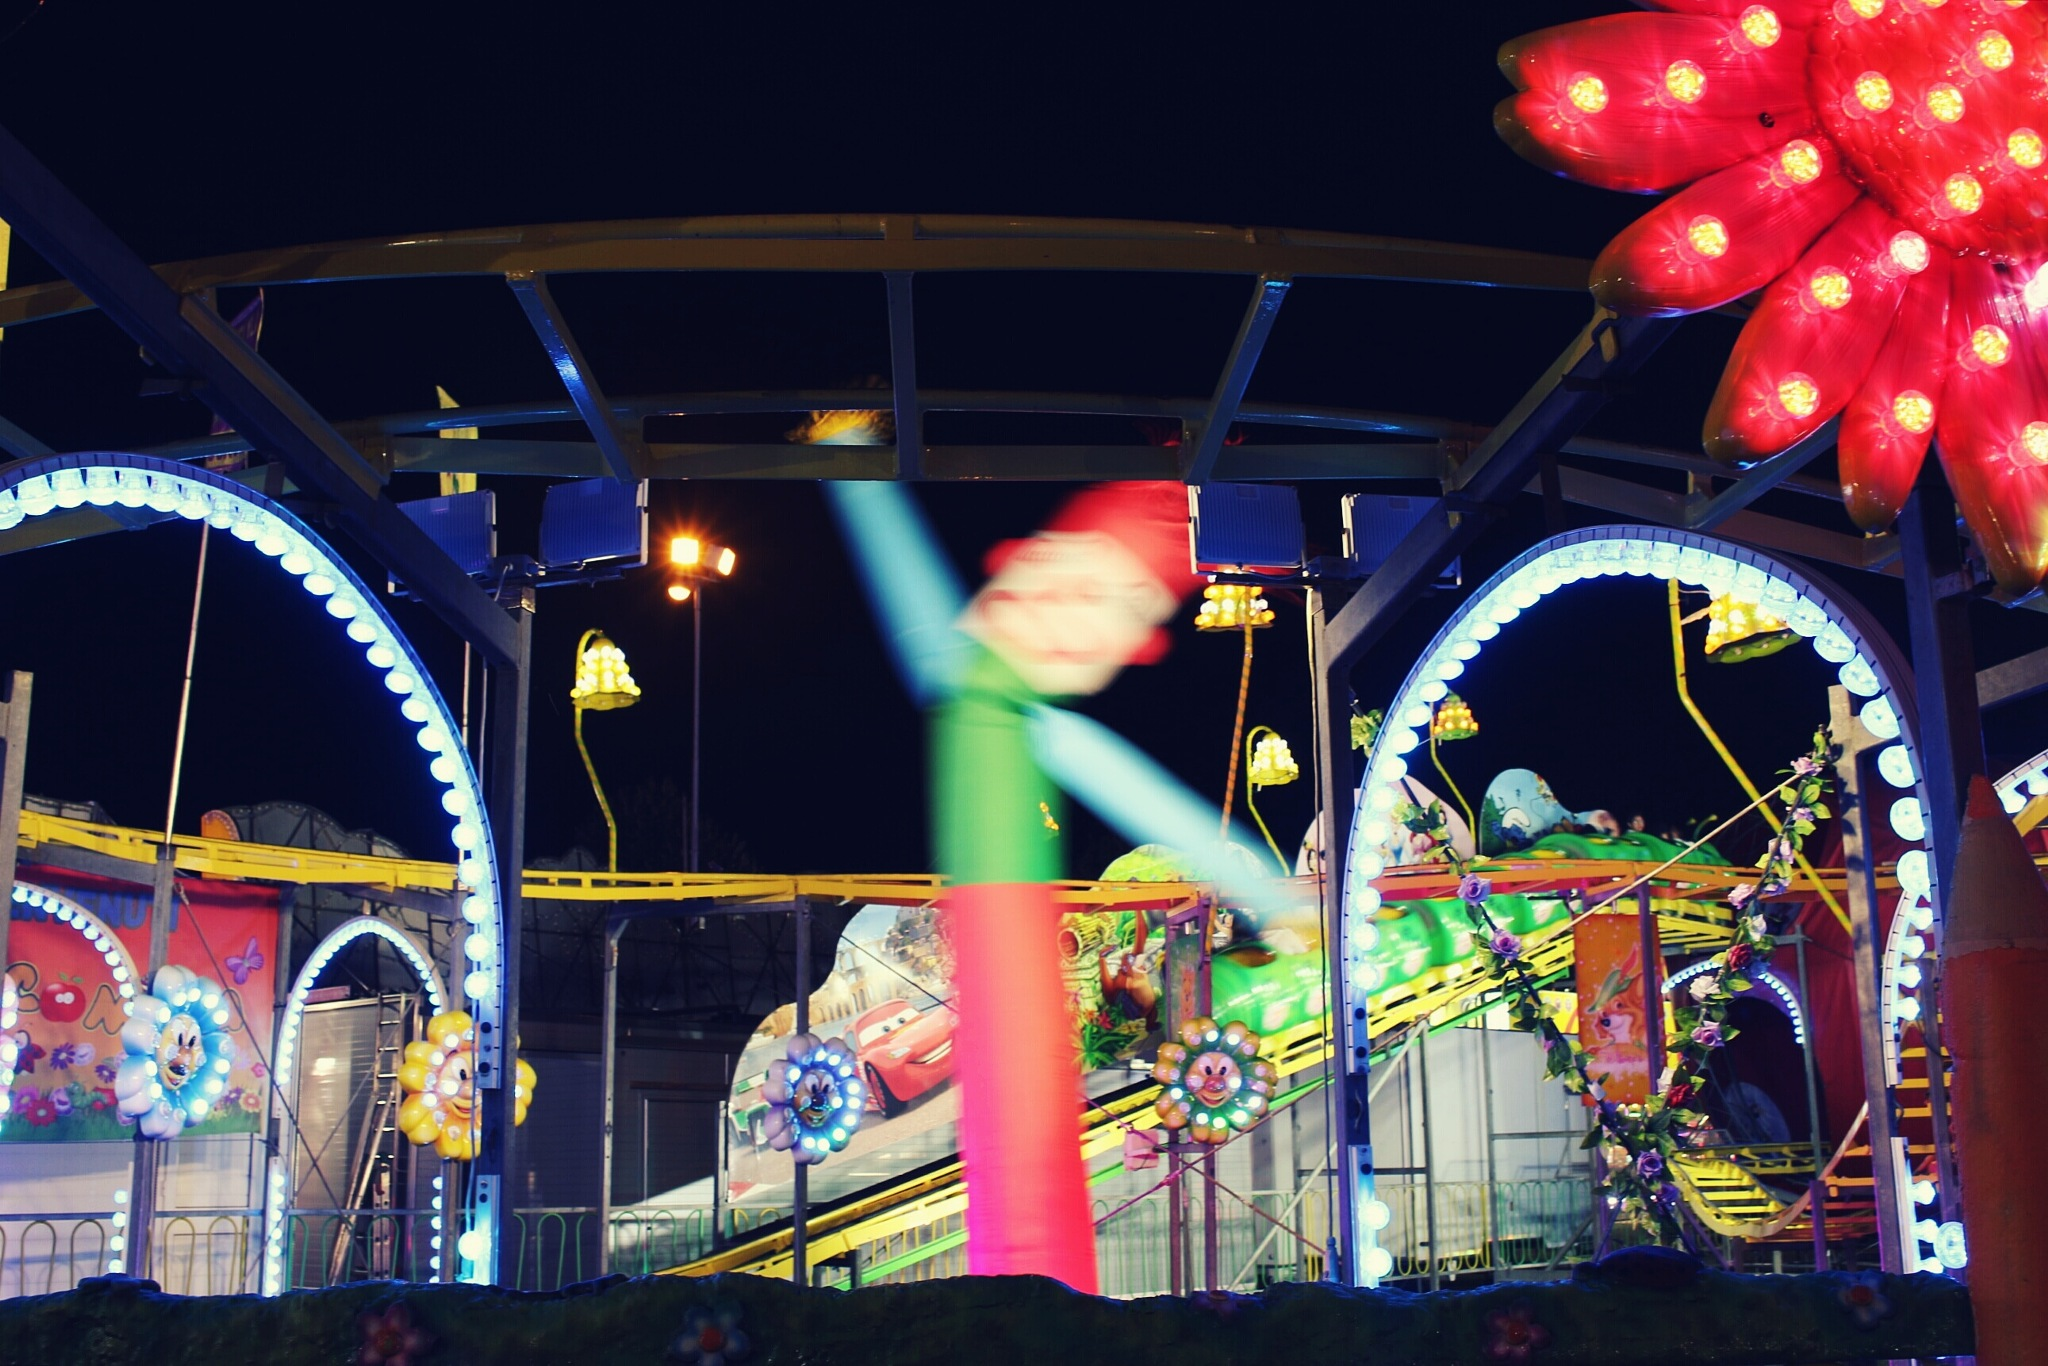 Lunapark by Paolo73